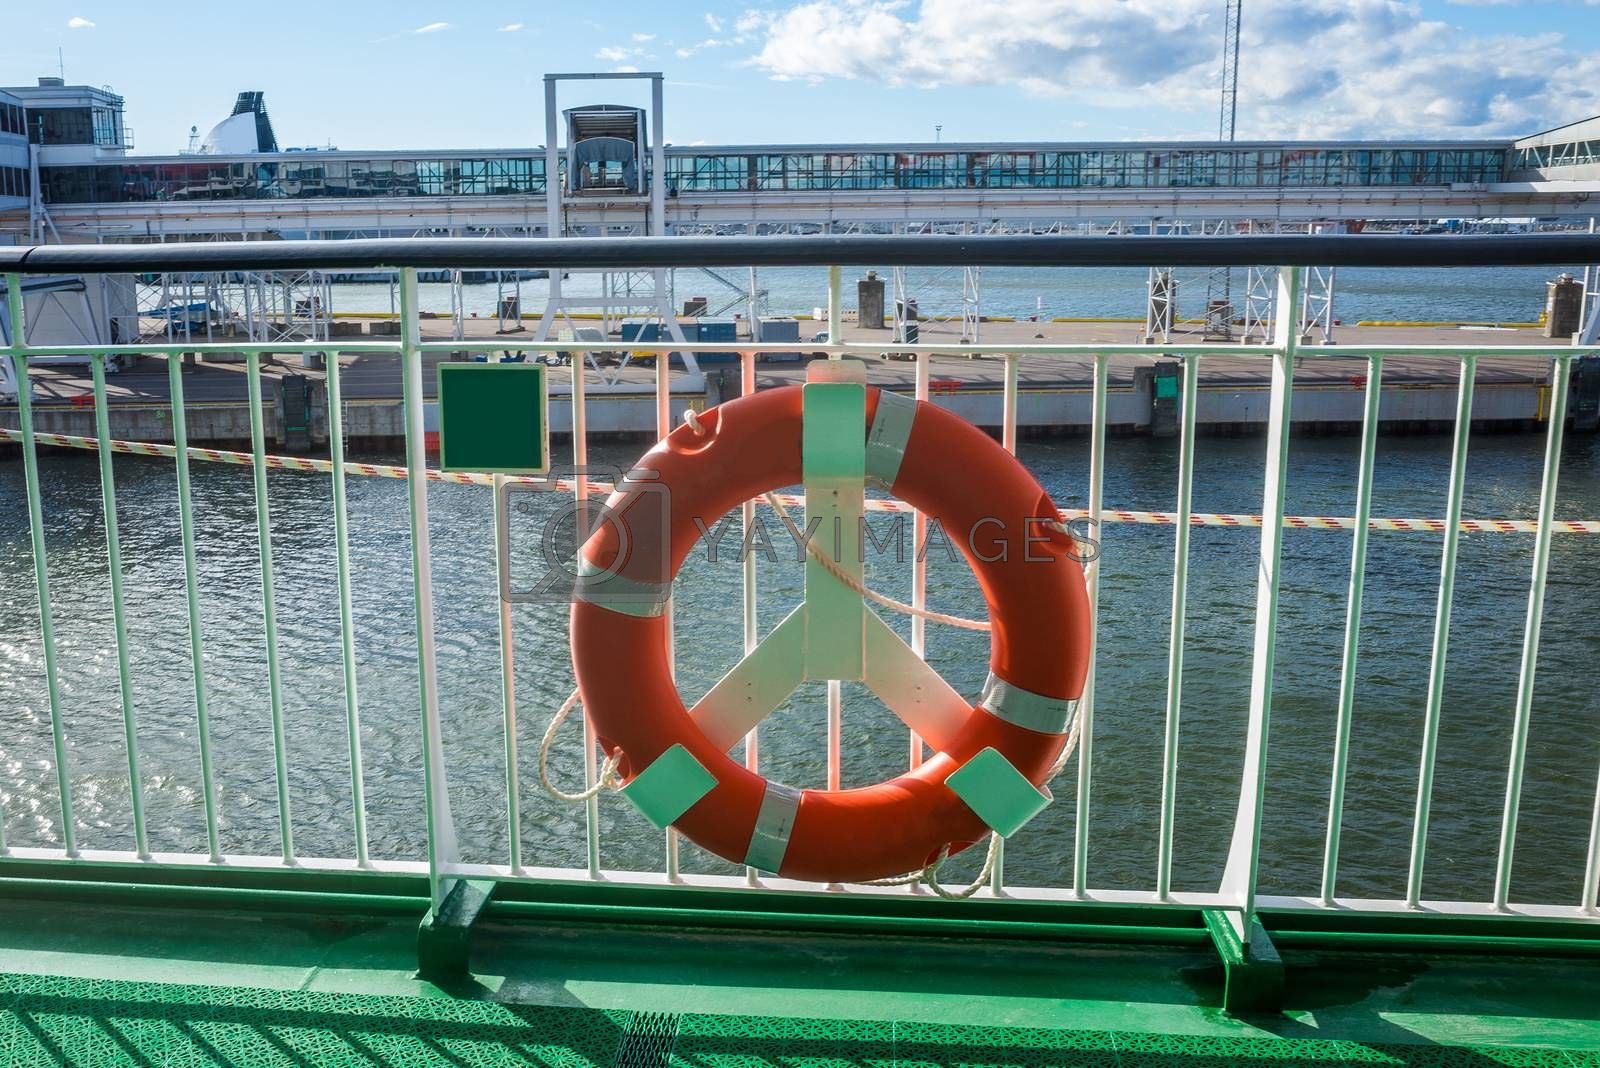 Lifebuoy on the railing of one of the decks of a tourist ferry